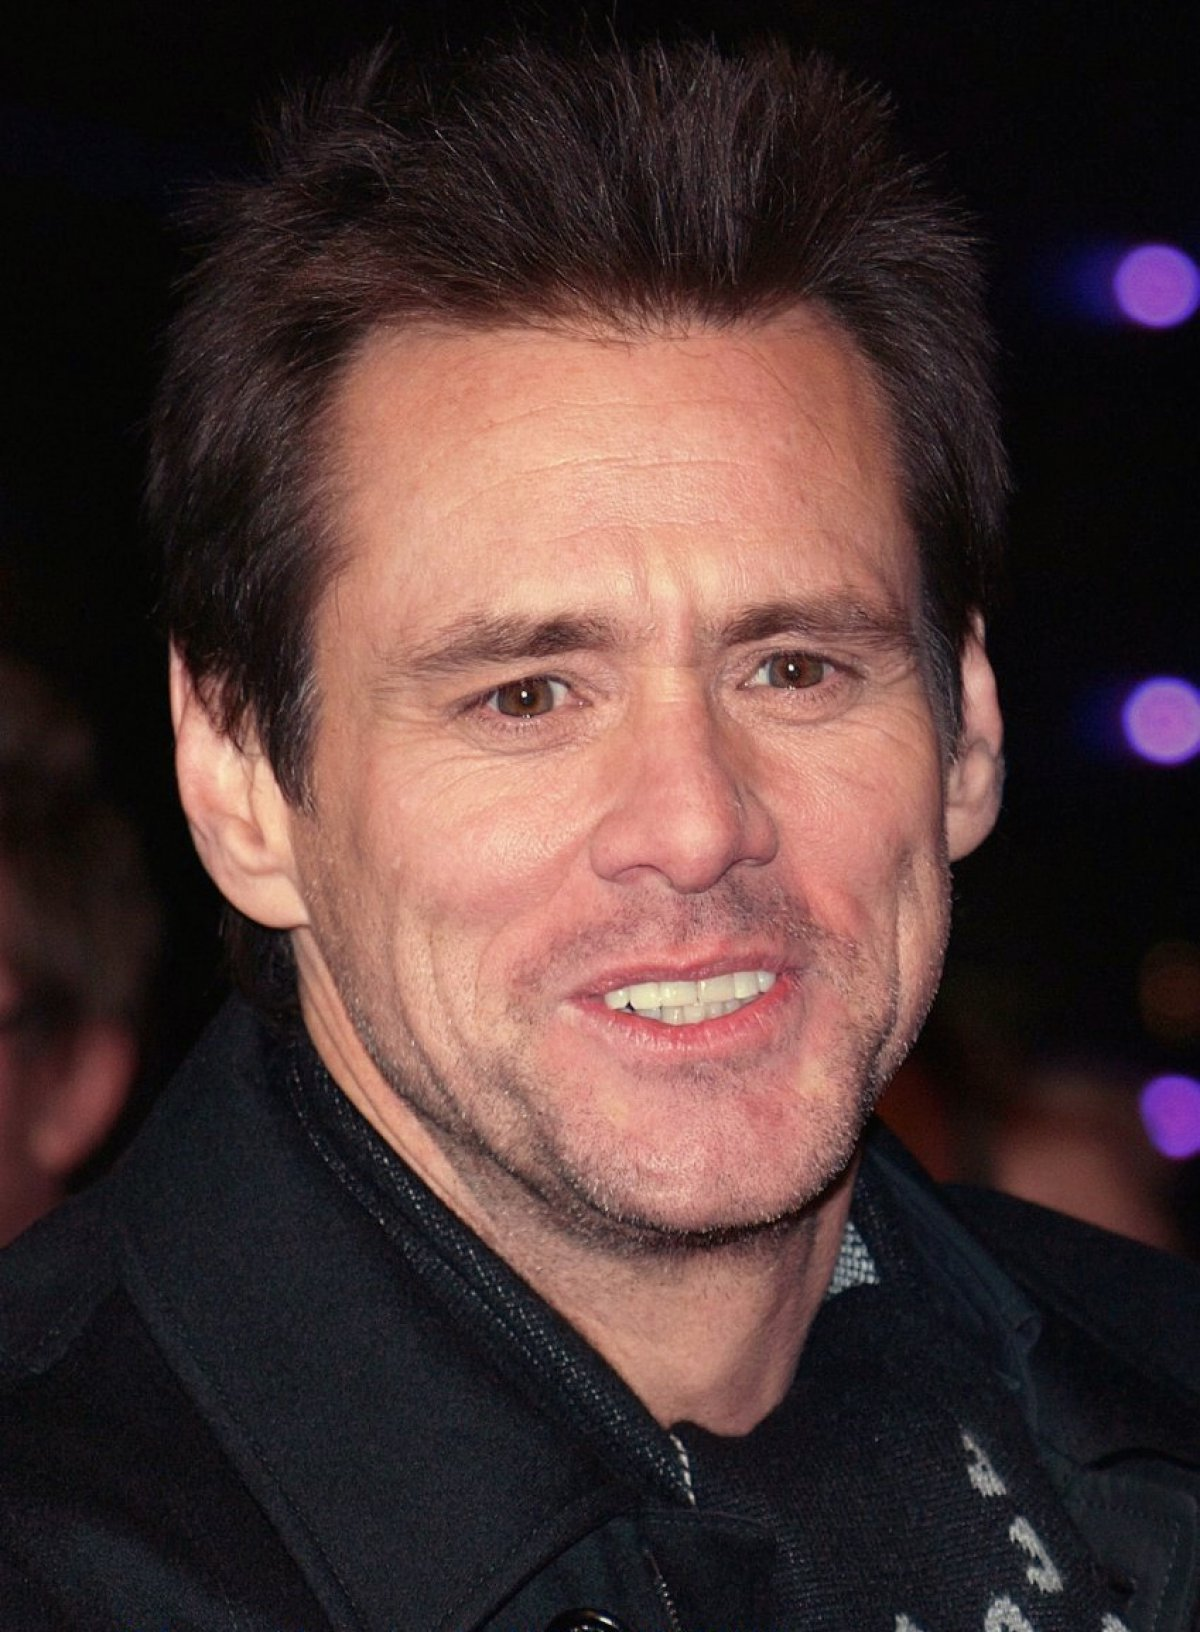 Jim Carrey, Jeff Daniels star in new 'Dumb and Dumber To